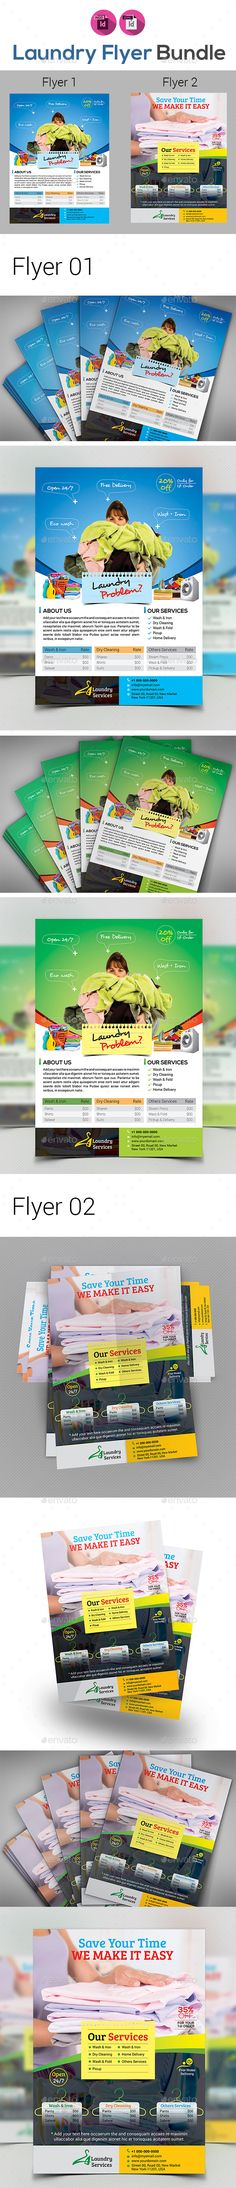 Laundry Services - Flyer Template | Pinterest | Laundry service ...